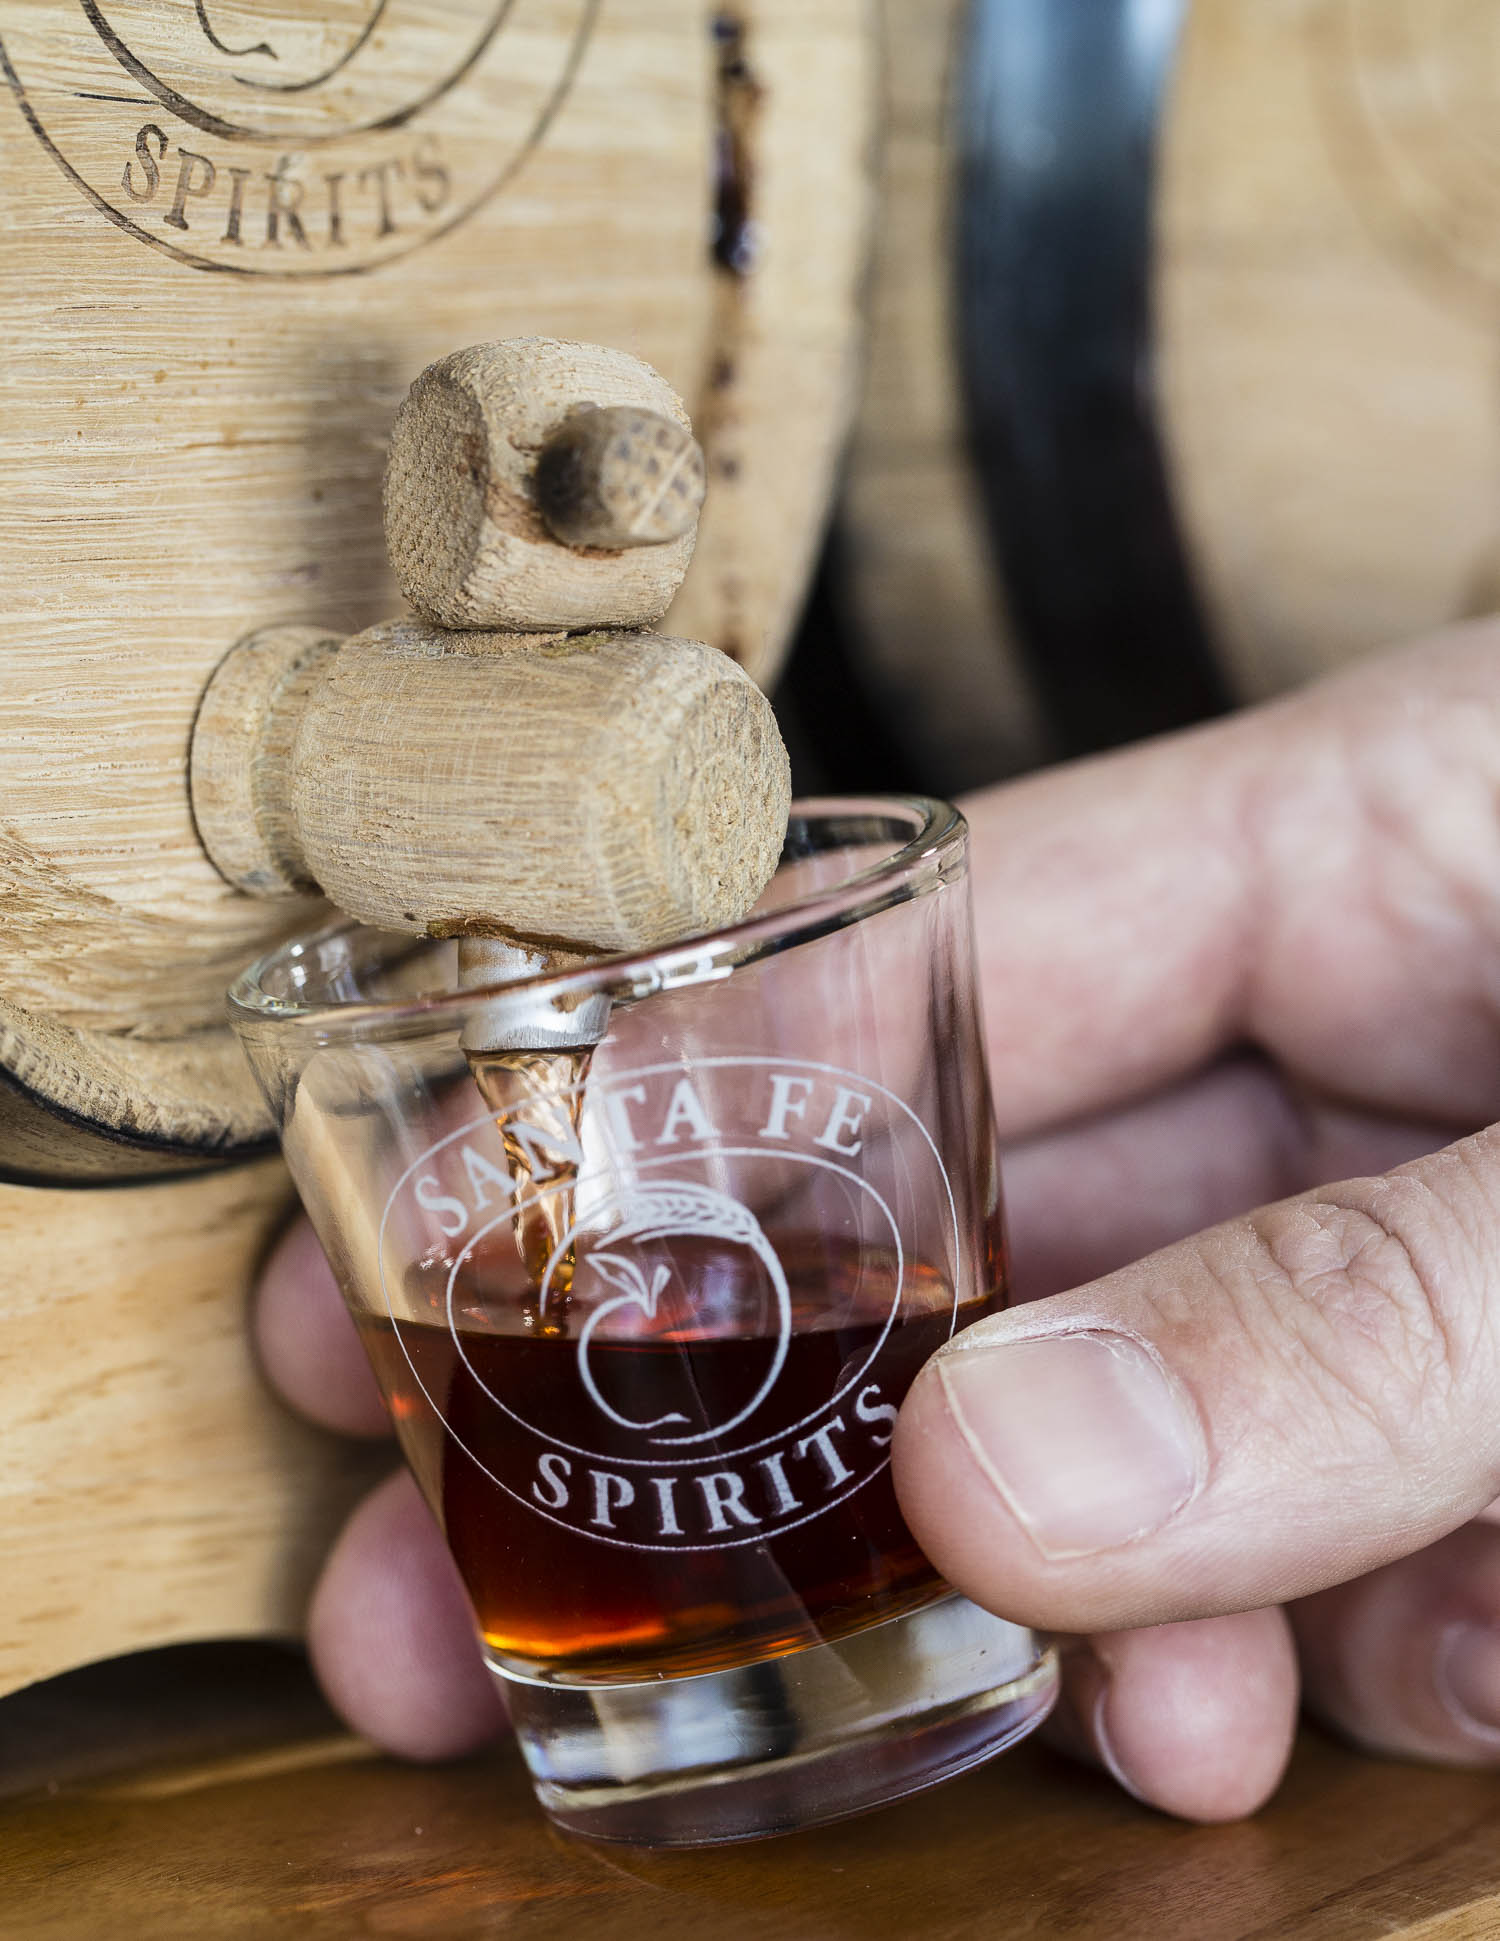 Tasting the barrel-aged manhattan made with Silver Coyote Whiskey. Photos by Jen Judge.